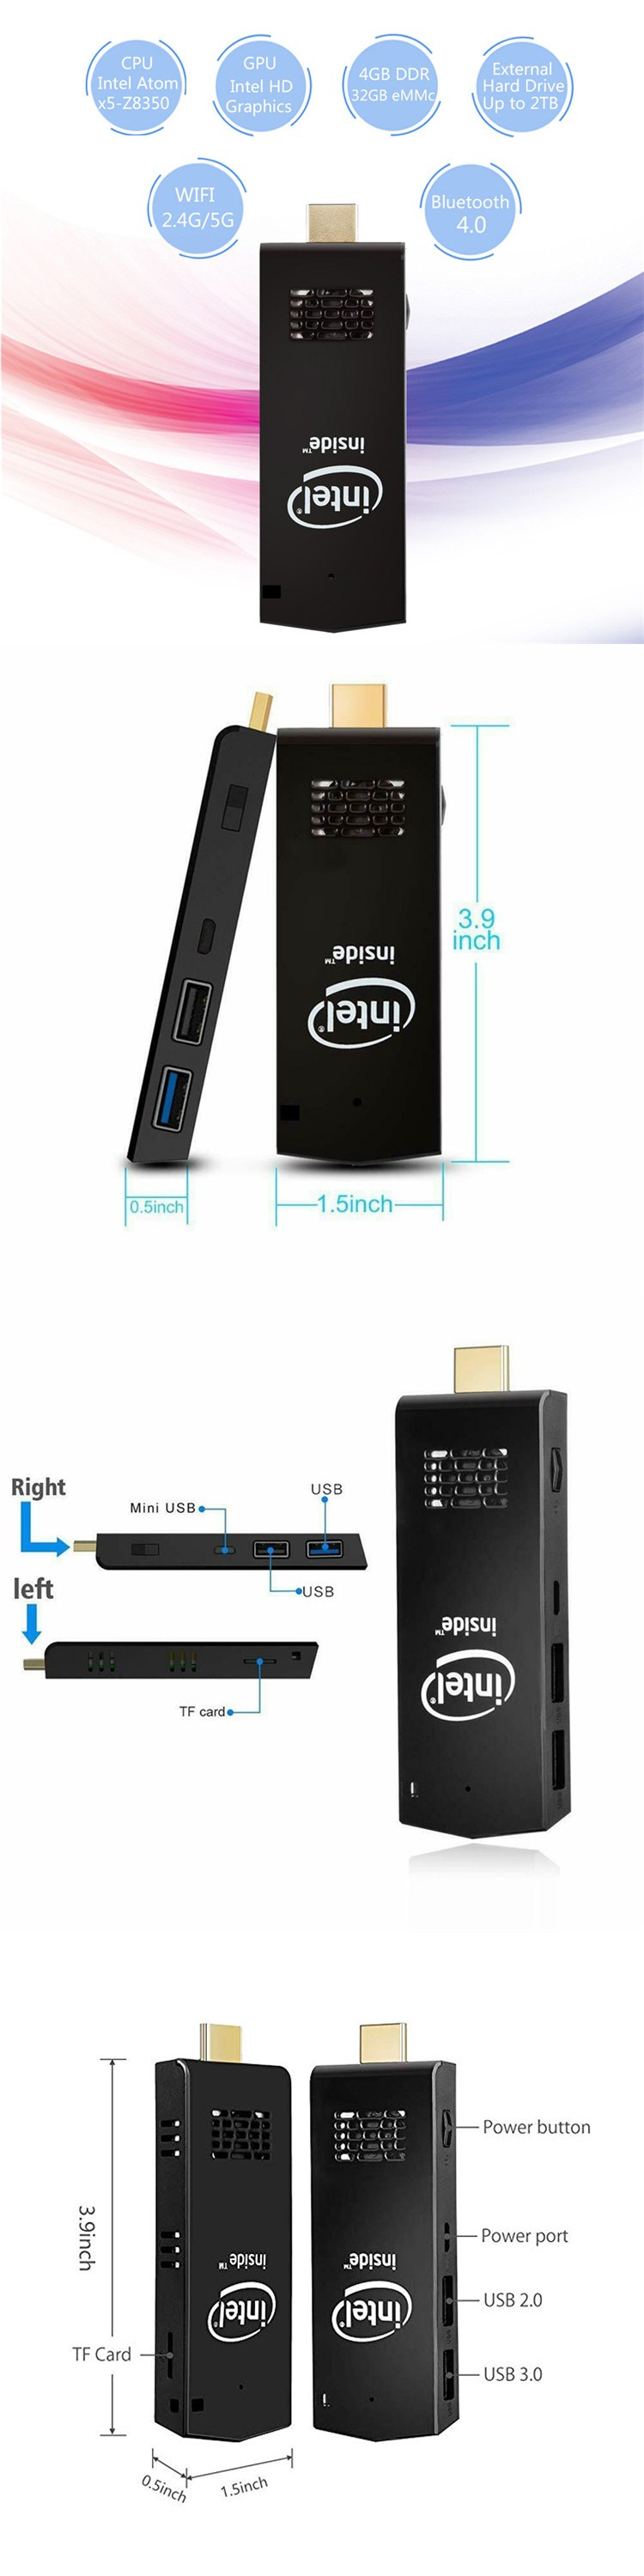 2.4G/5G wifi cheap mini pc 4 nic hd stick T5 external hard drive up to 2TB